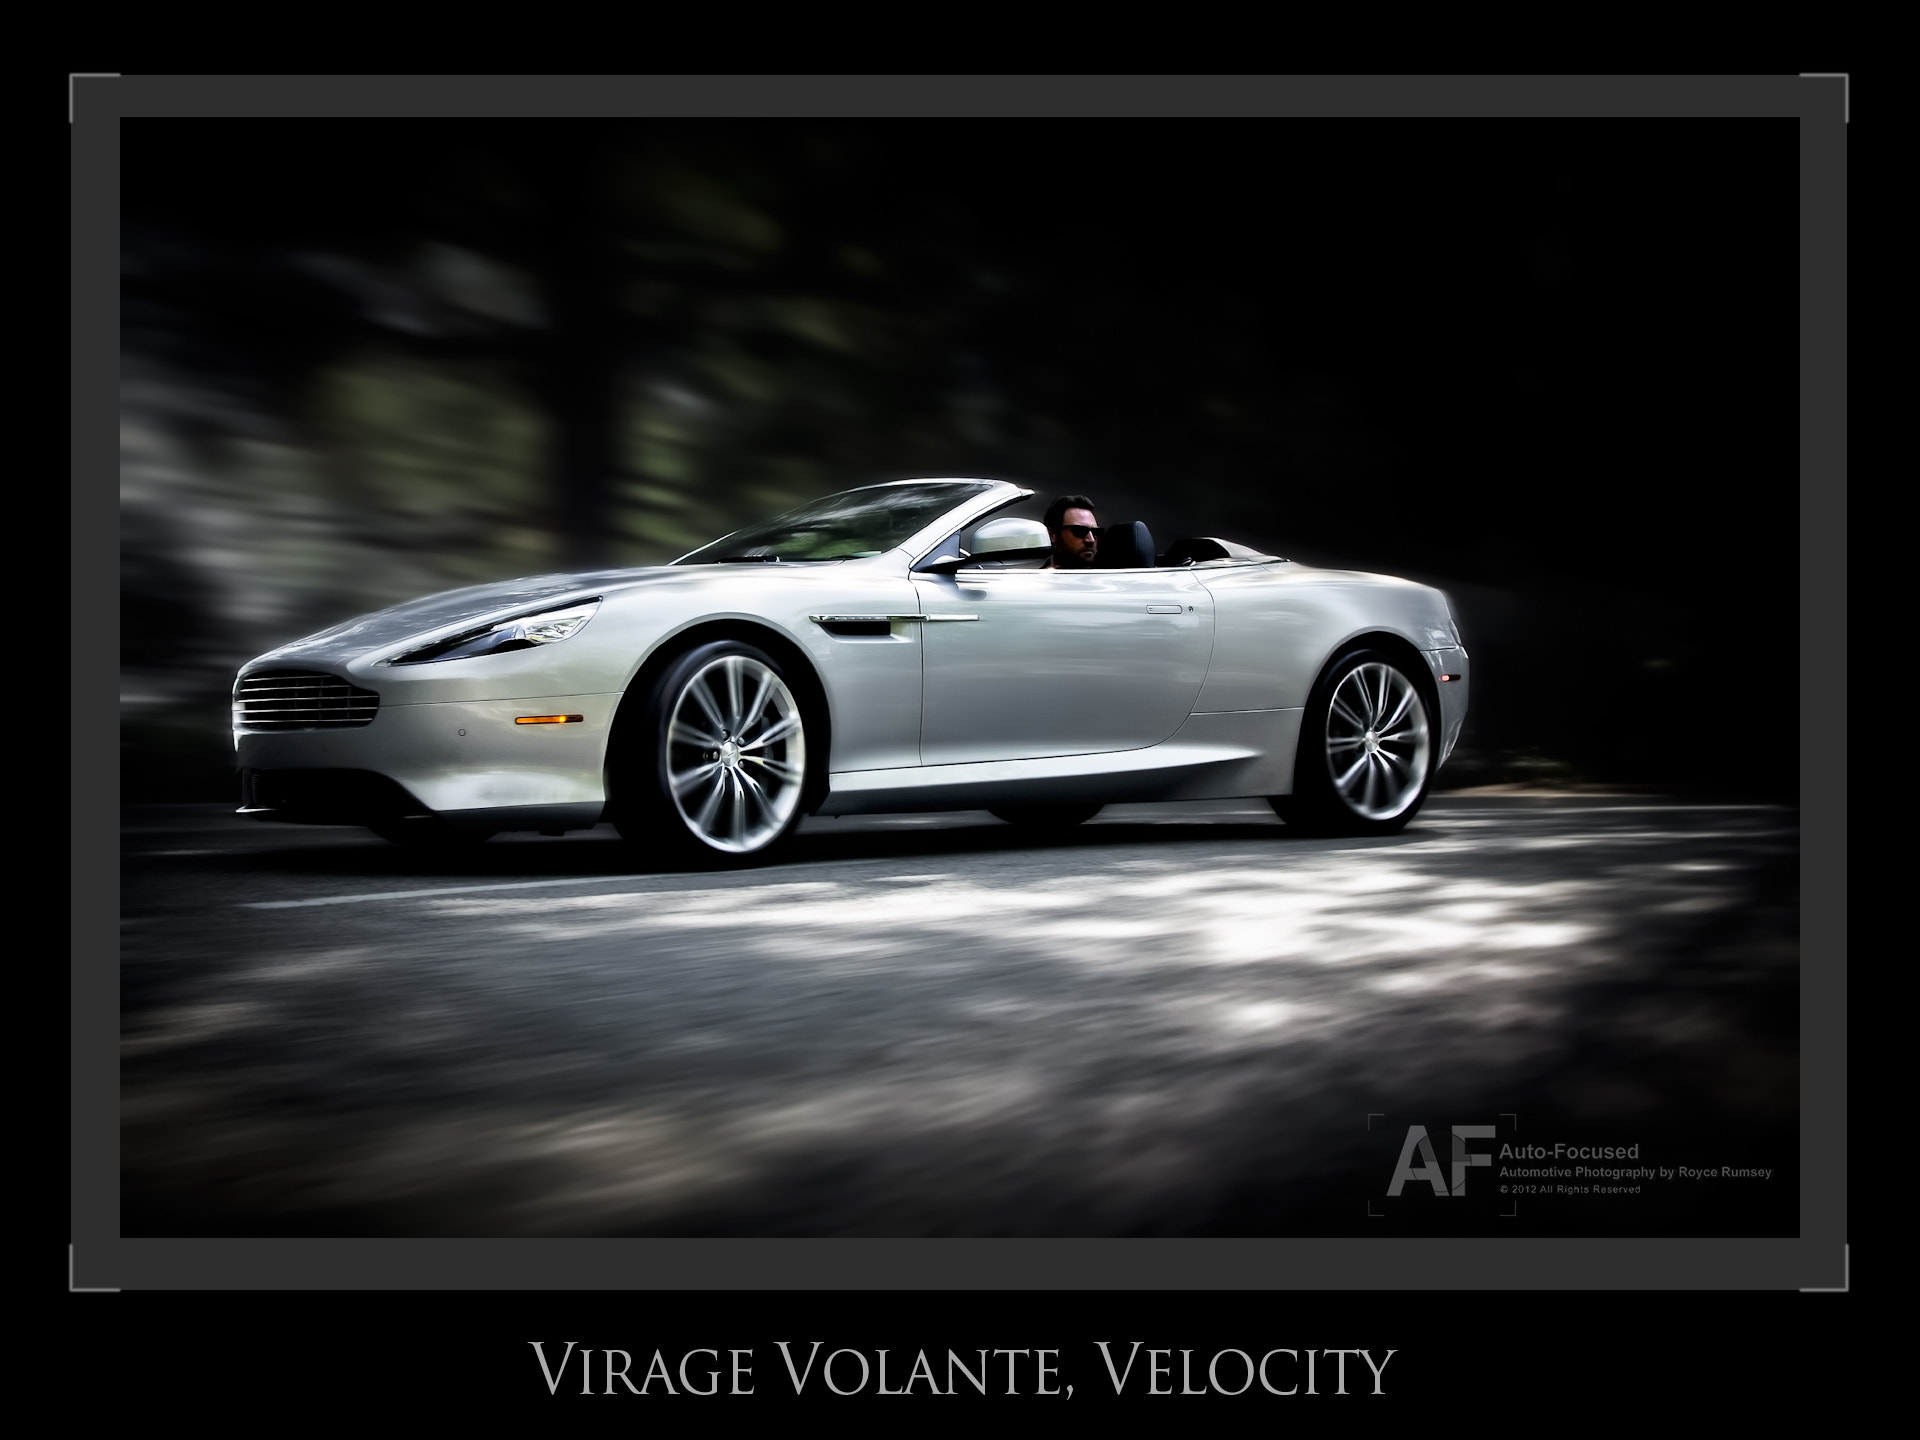 Photograph Candid, Virage Volante Velocity by Royce Rumsey on 500px